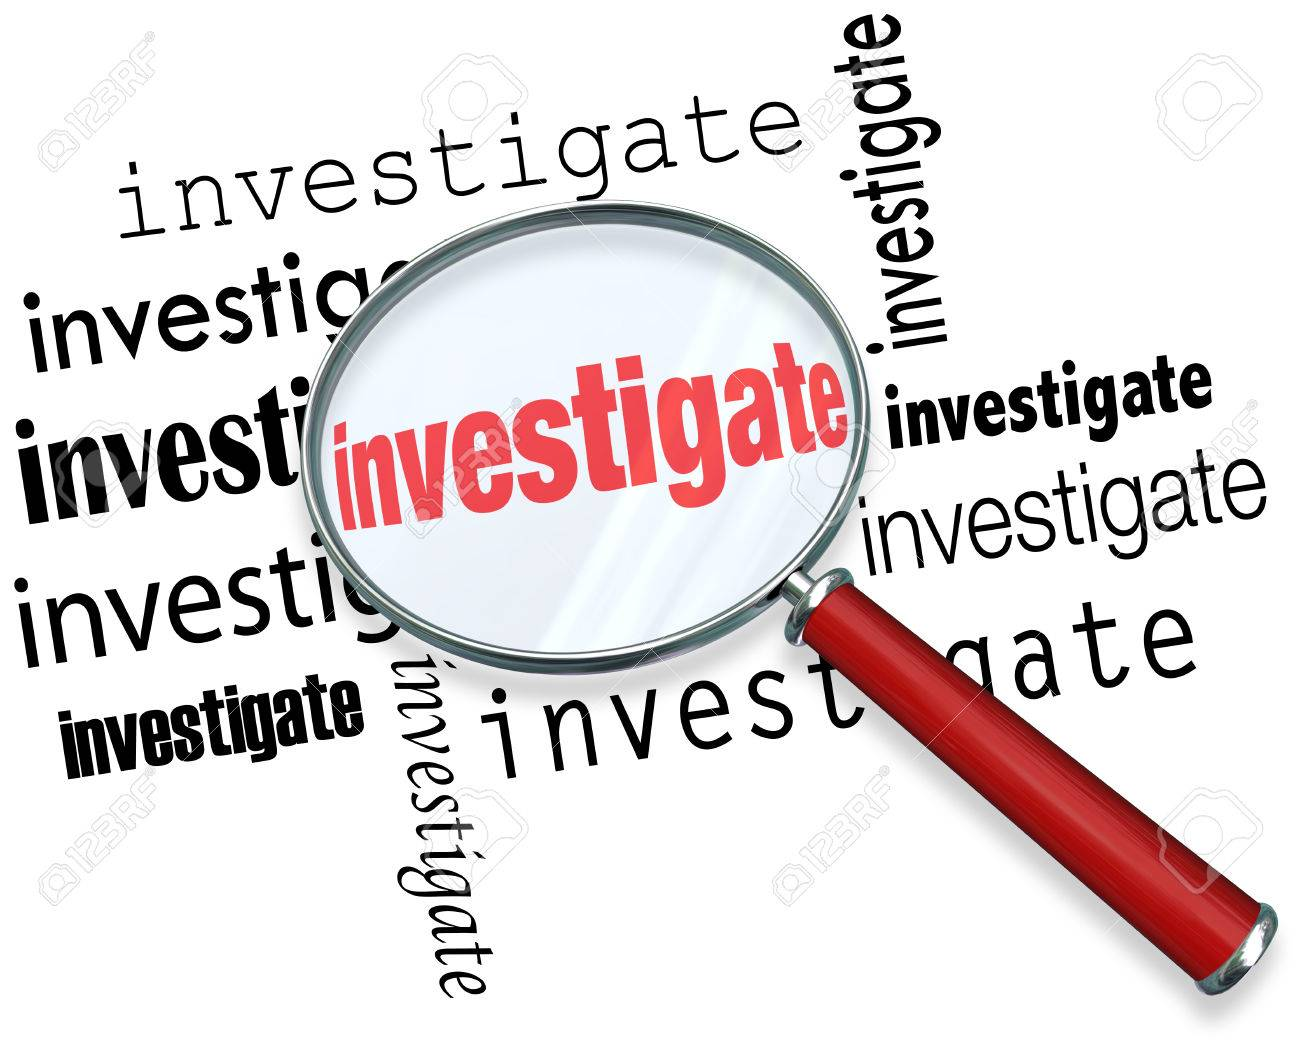 researching stock photos images royalty researching images researching magnfiying glass on the word investigate to illustrate detective or police work researching facts